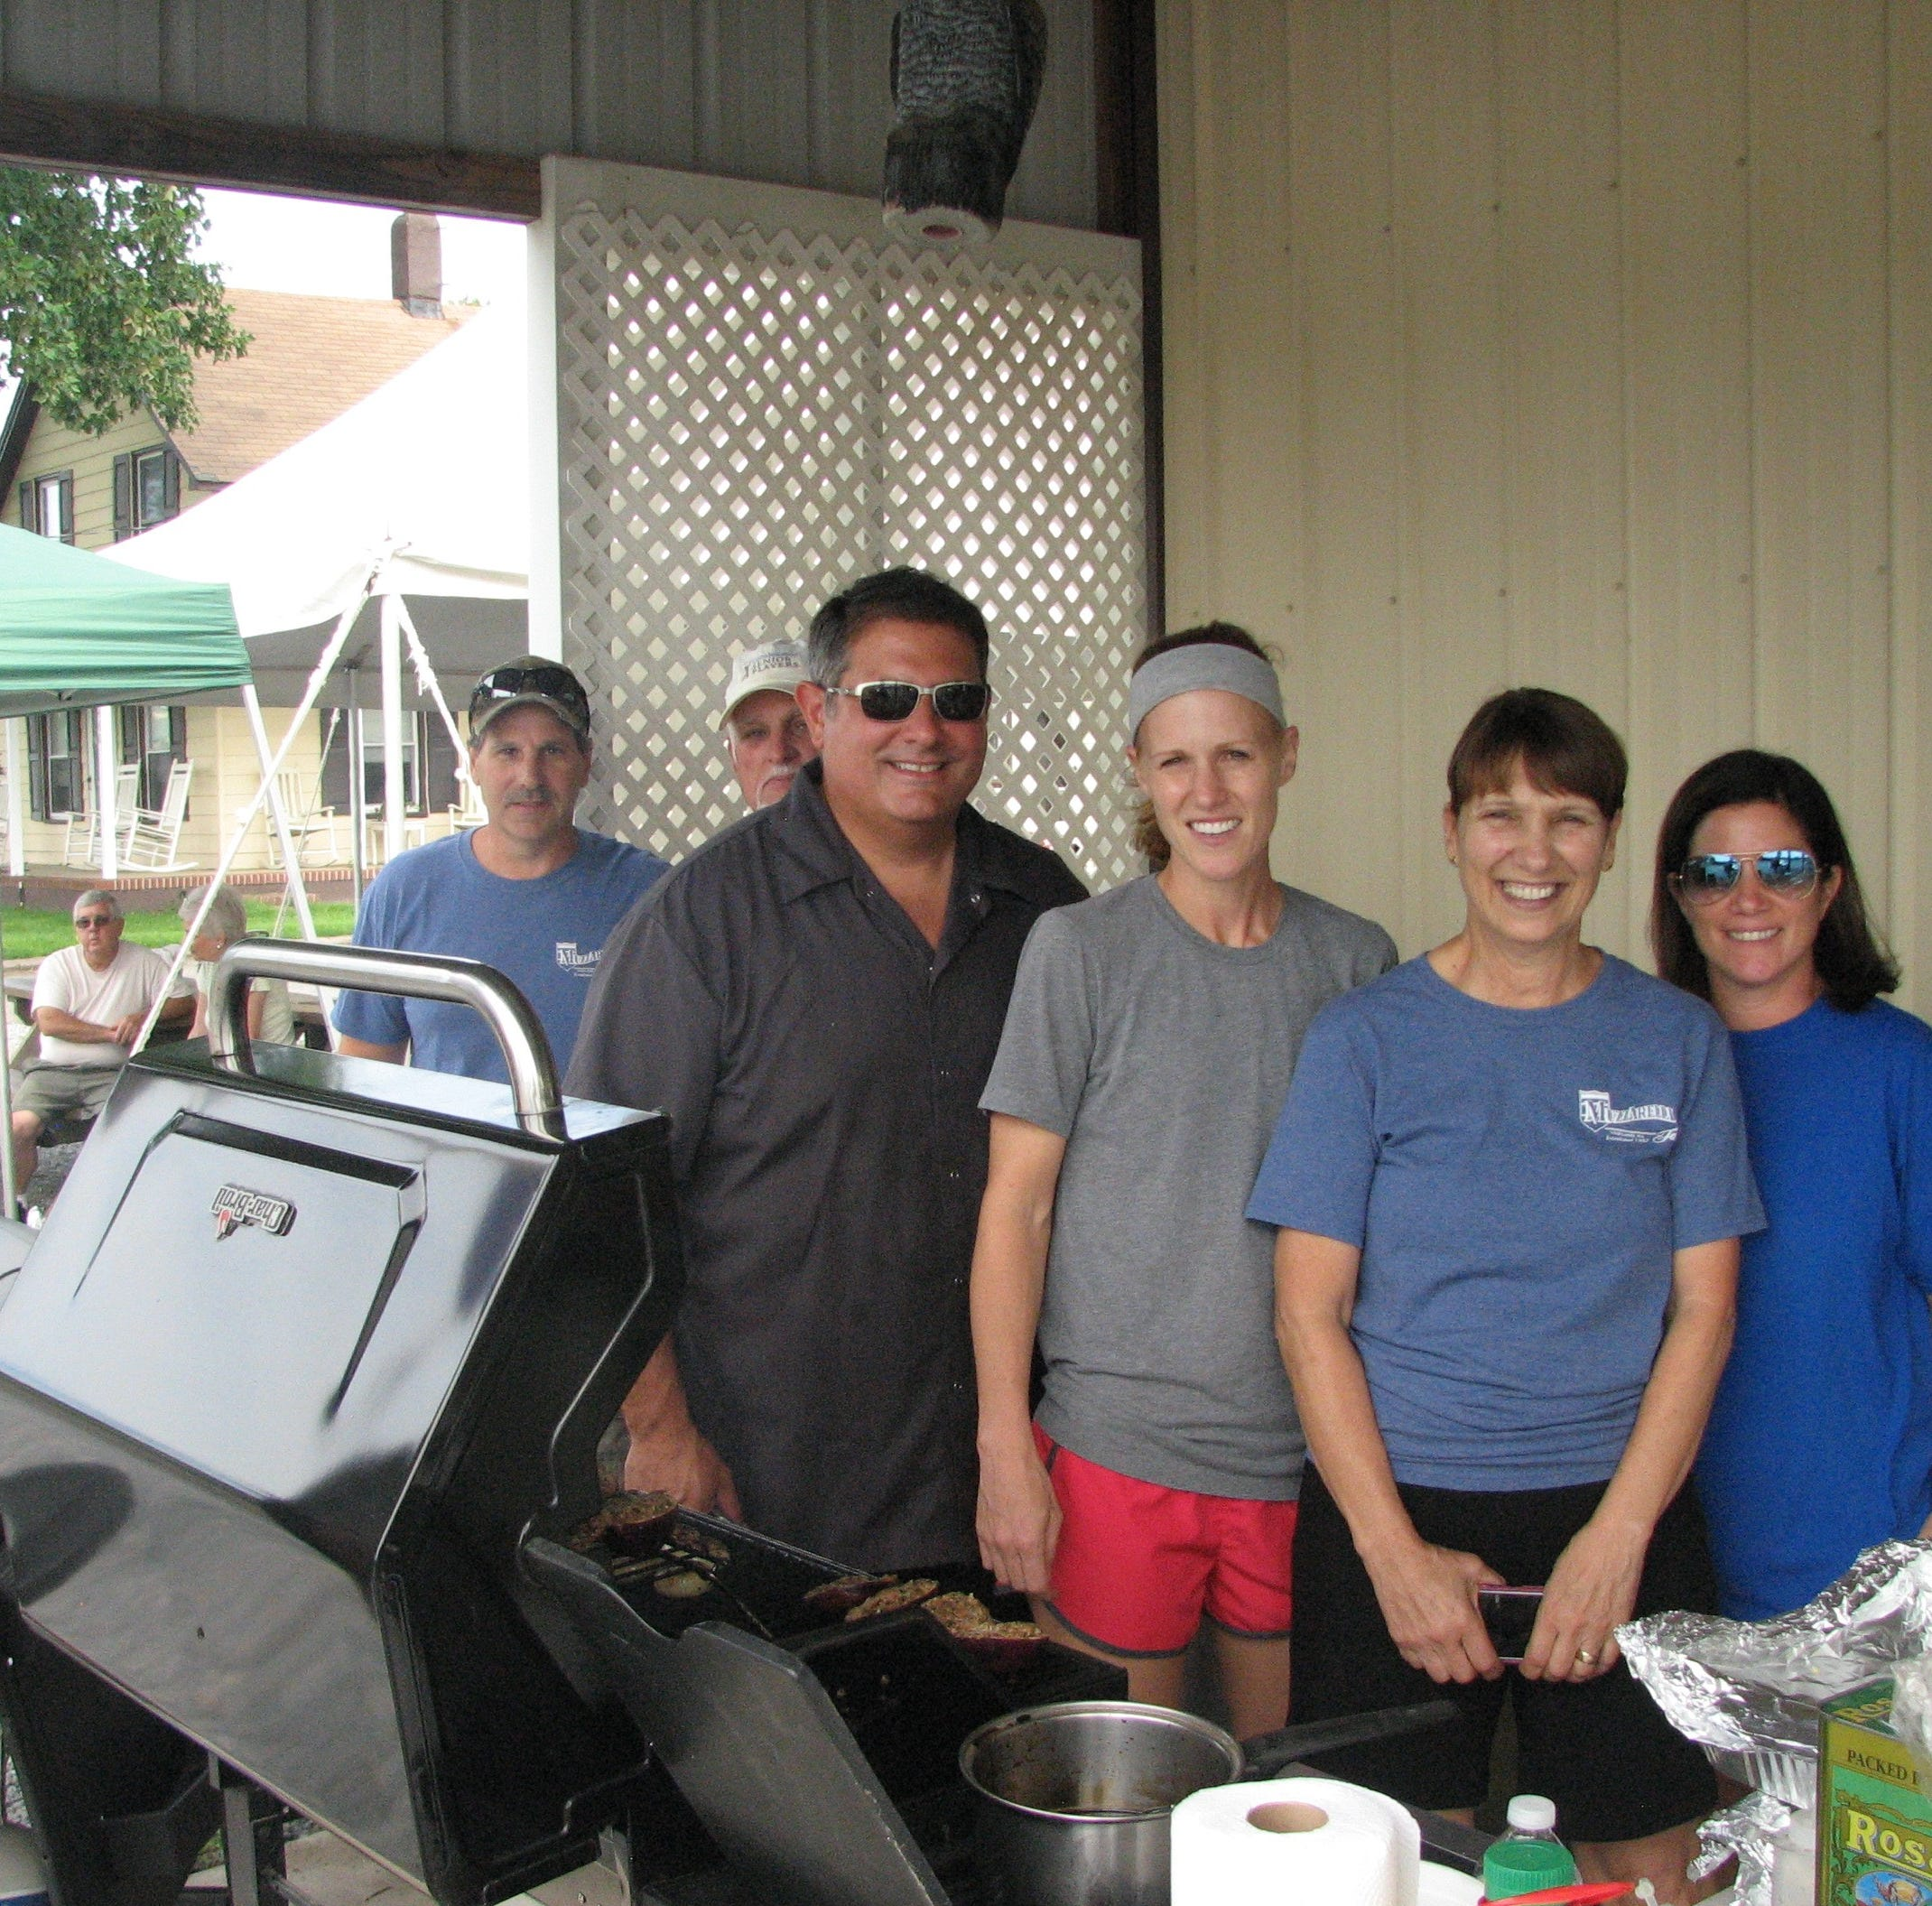 Muzzarelli Farms hosts grilling event